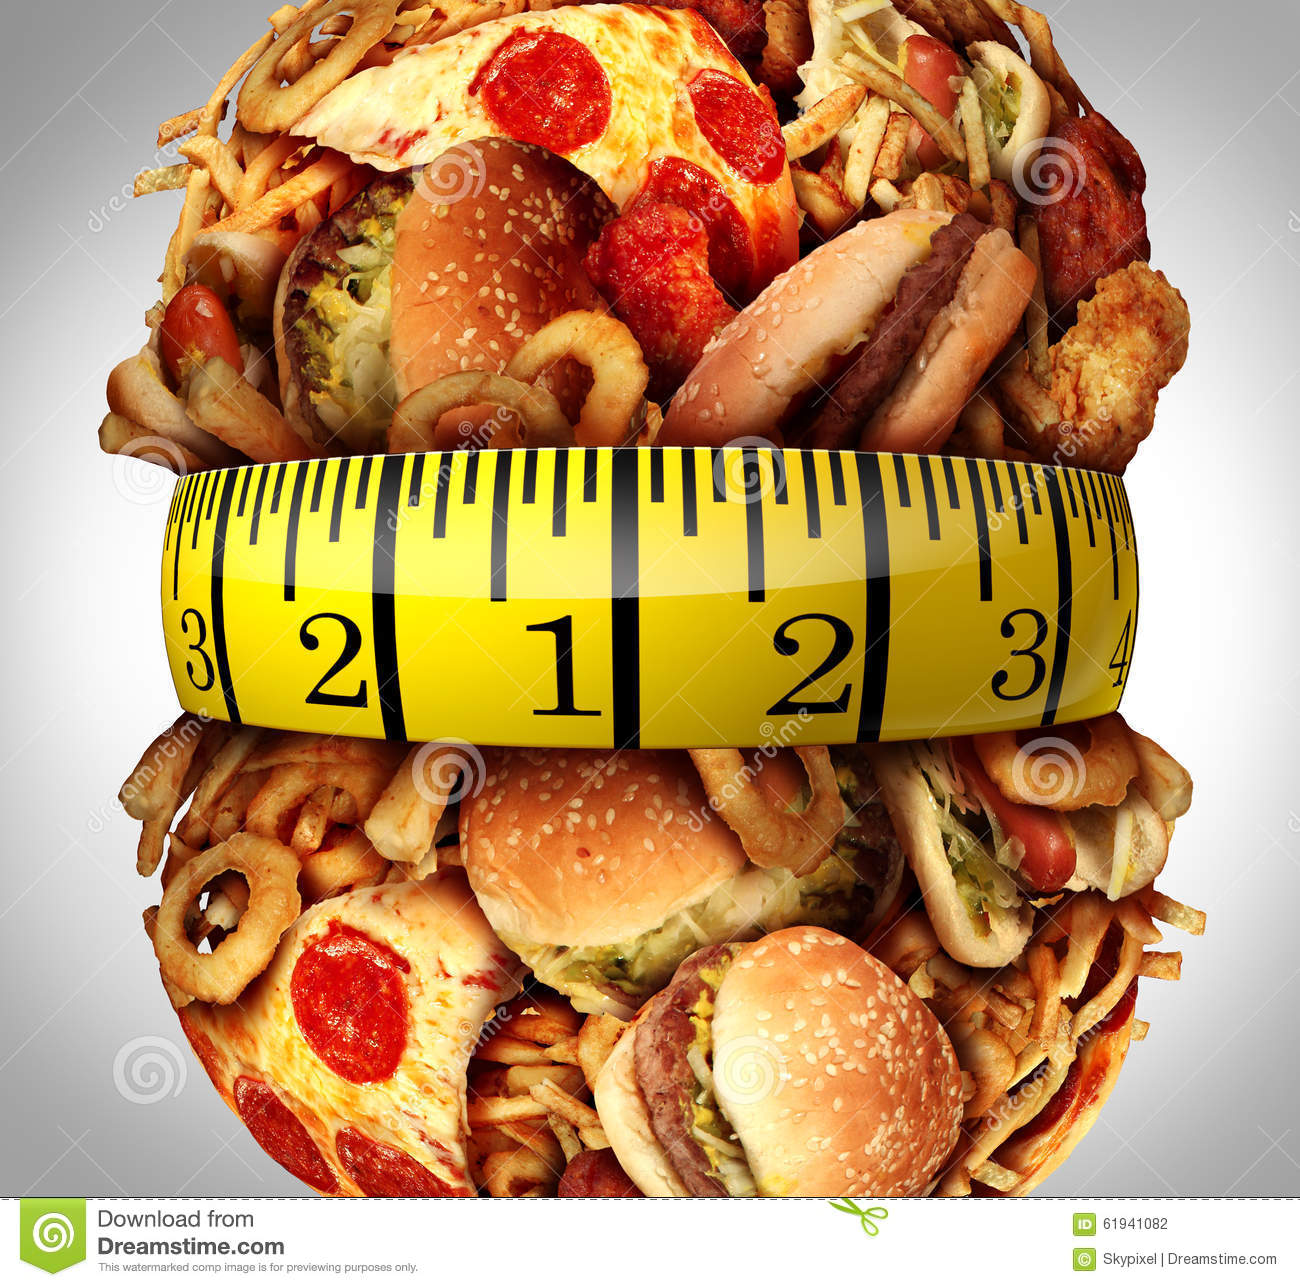 the contribution of the fast food industry to obesity in the united states As a result of the fast food companies' actions, barber suffered injuries — he  has contributed knowingly to the problem of obesity in america.